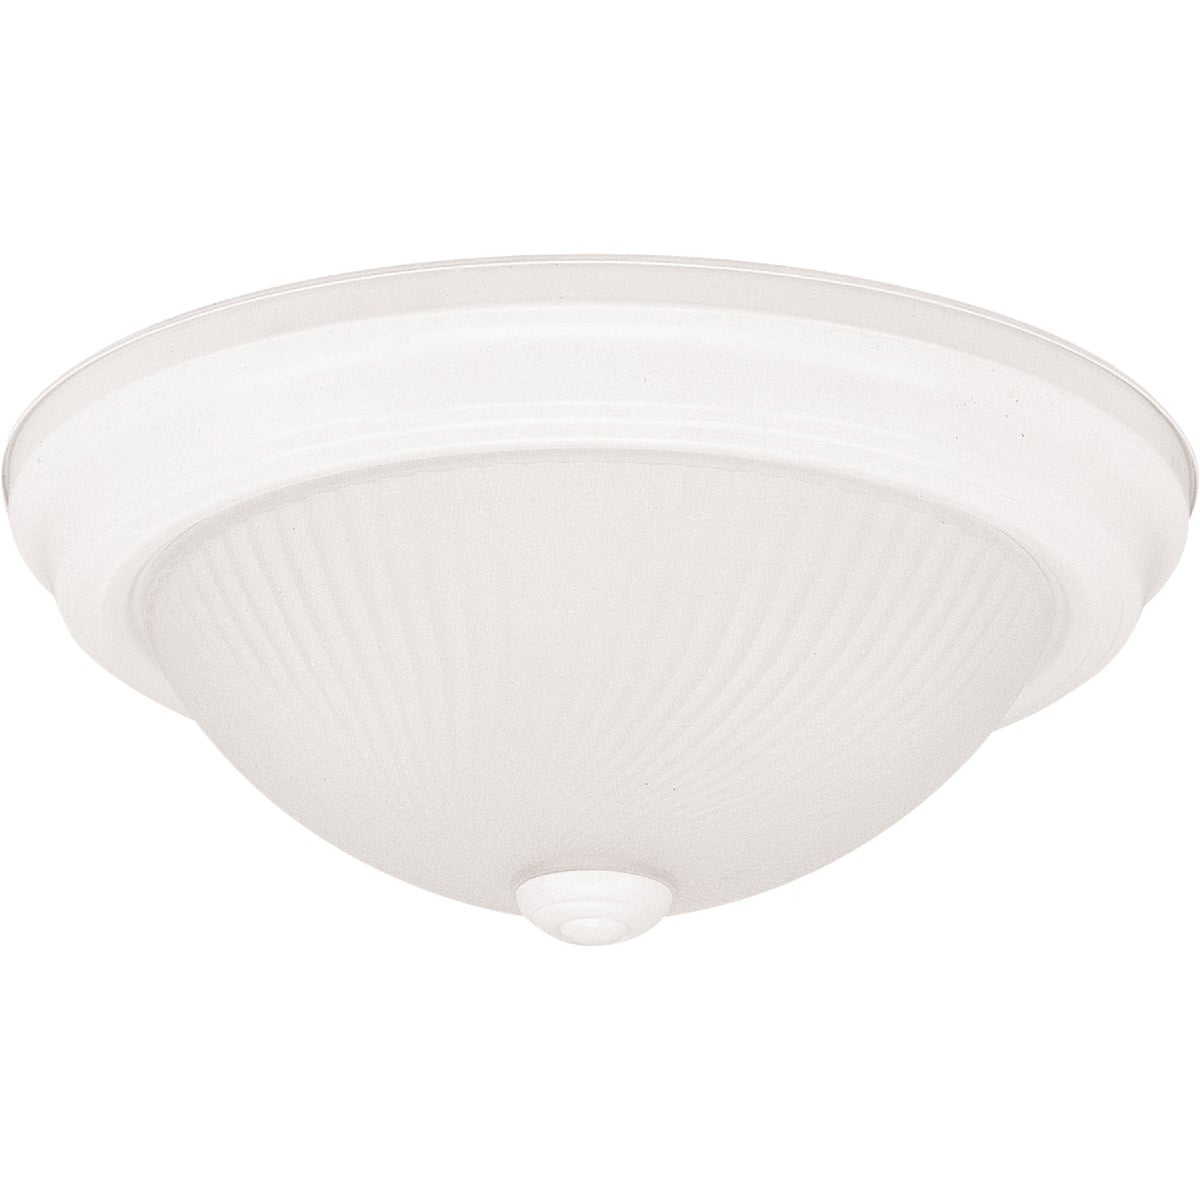 2BULB WH CEILING FIXTURE - IFM213WH by Canarm Gs